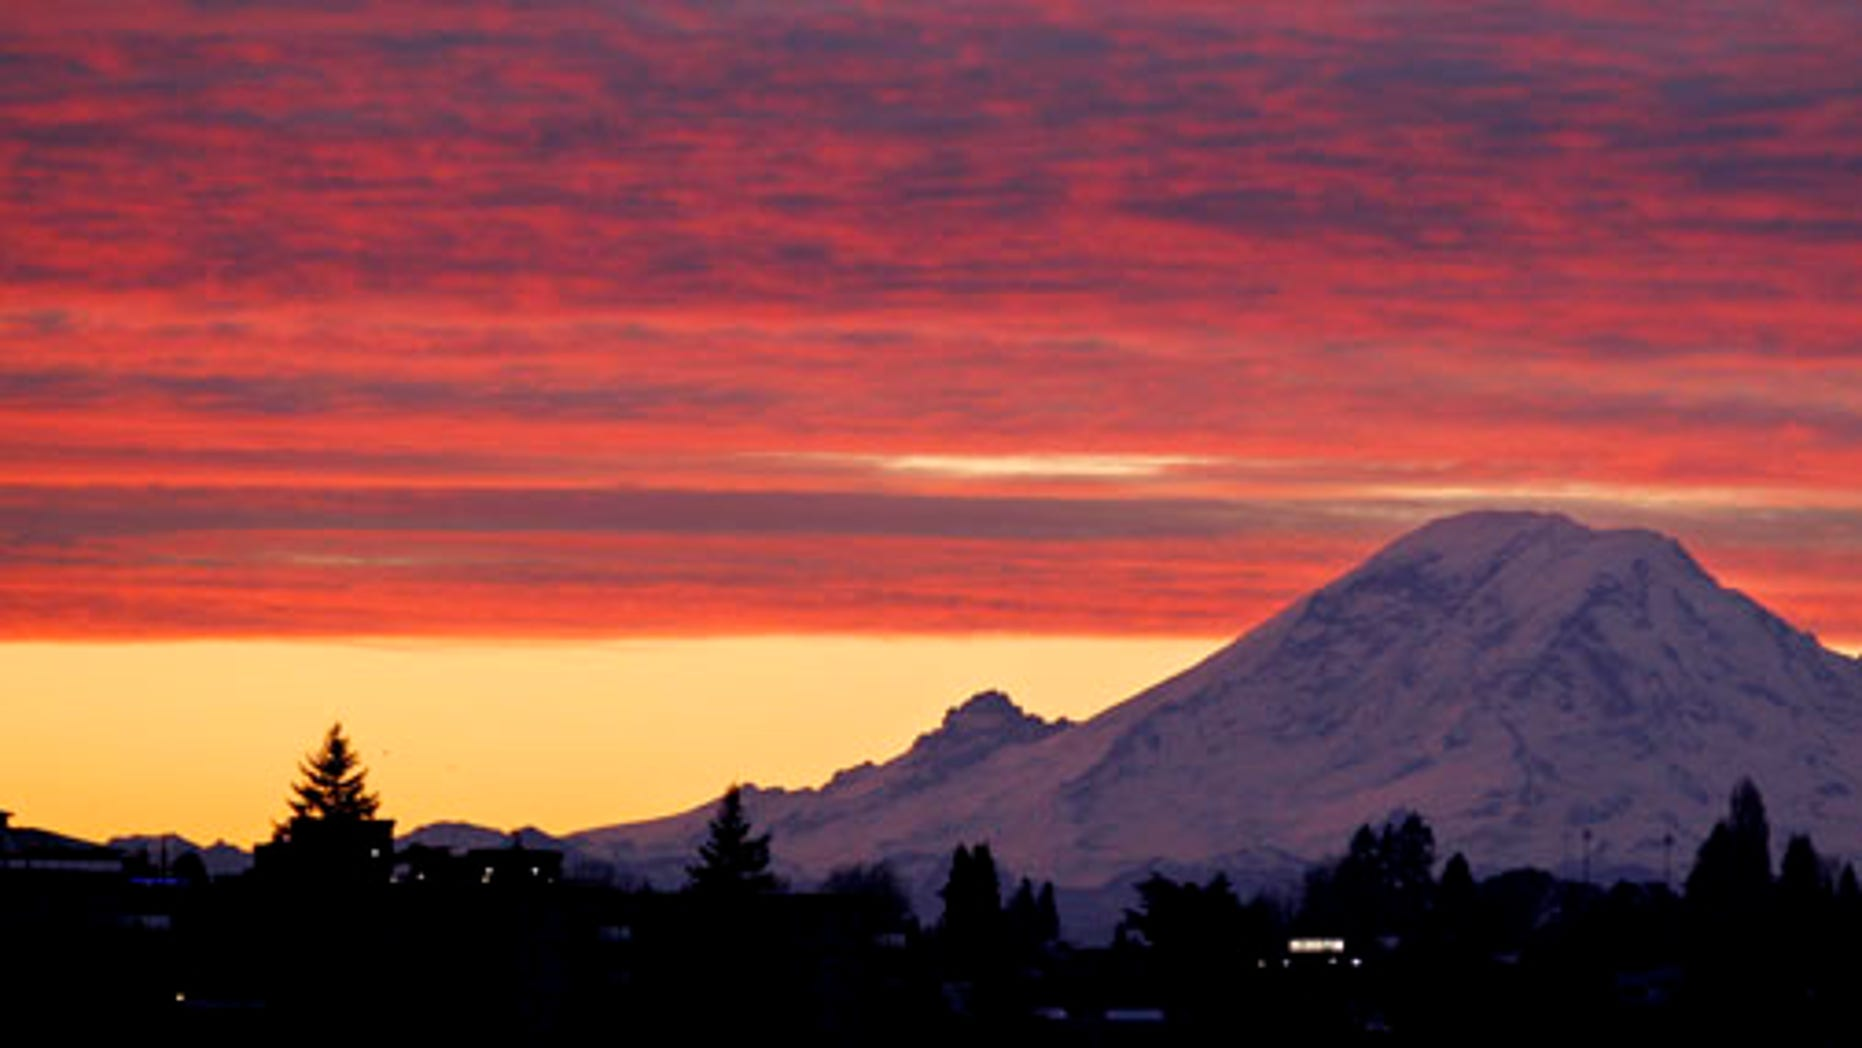 Mount Rainer, a 14,411-foot stratovolcano, is seen at dawn during a colorful sunrise Tuesday, Dec. 13, 2011, from Seattle, some 50 miles away. Generally clear skies are expected through Tuesday in the area, with an increasing chance of showers coming Wednesday, with highs in the low 40's through the week. (AP Photo/Elaine Thompson)